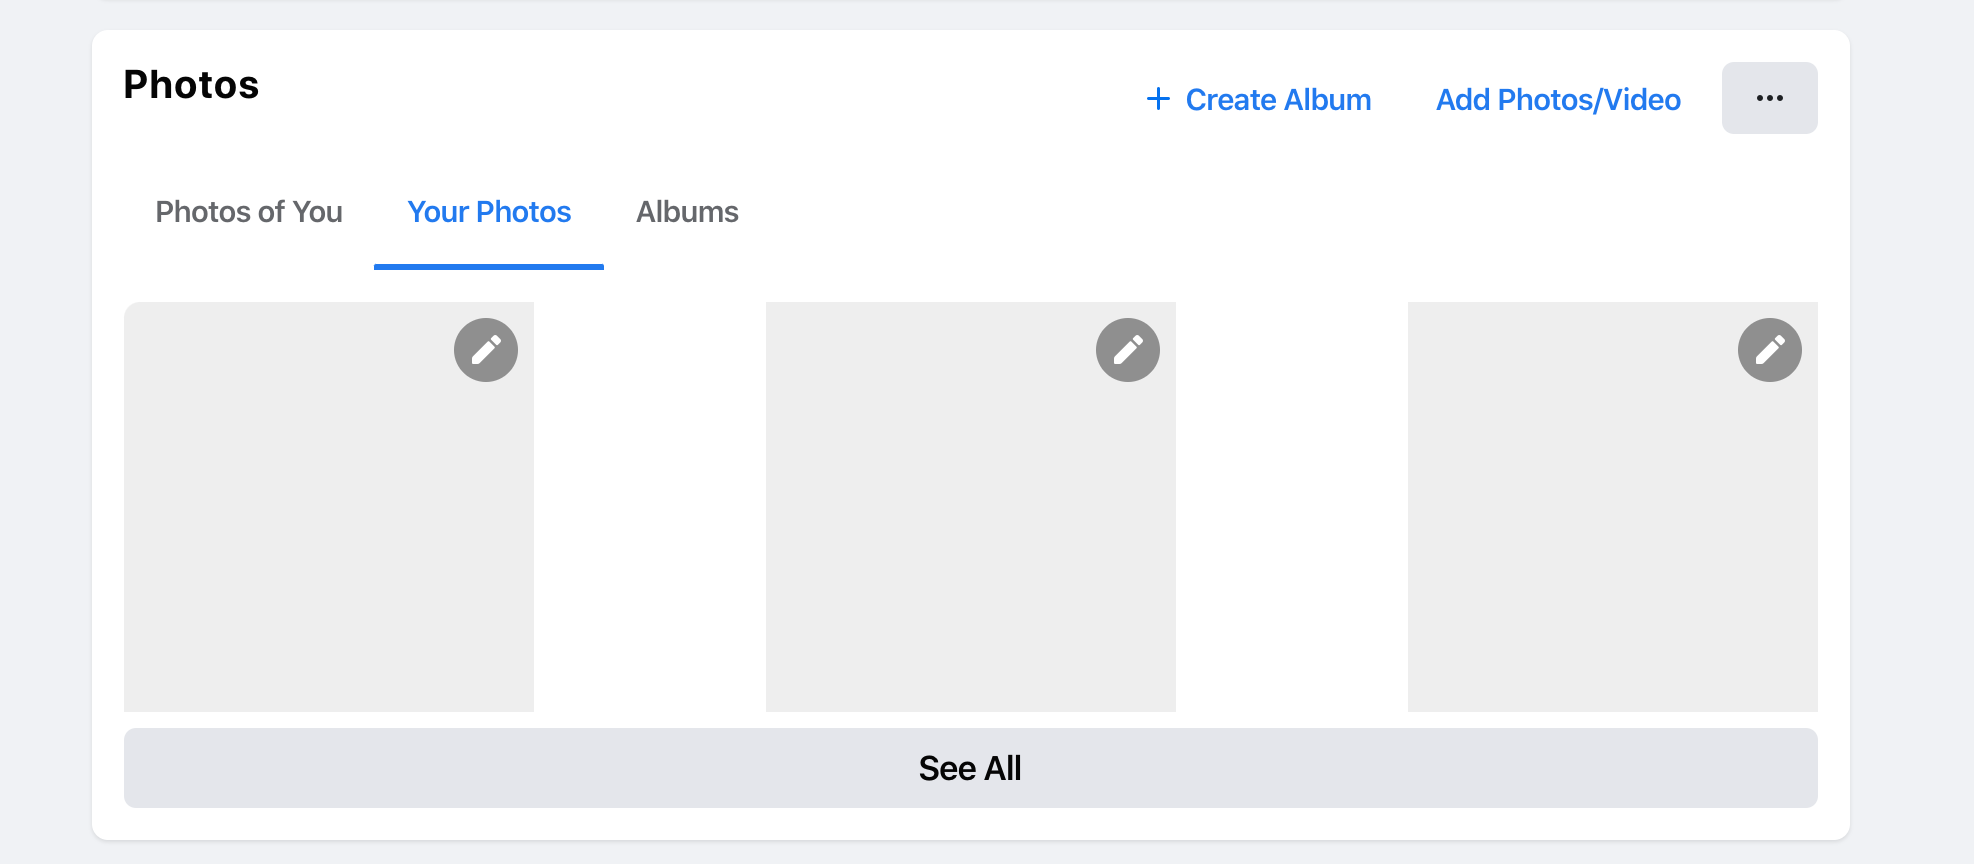 CSS Findings From The New Facebook Design 22